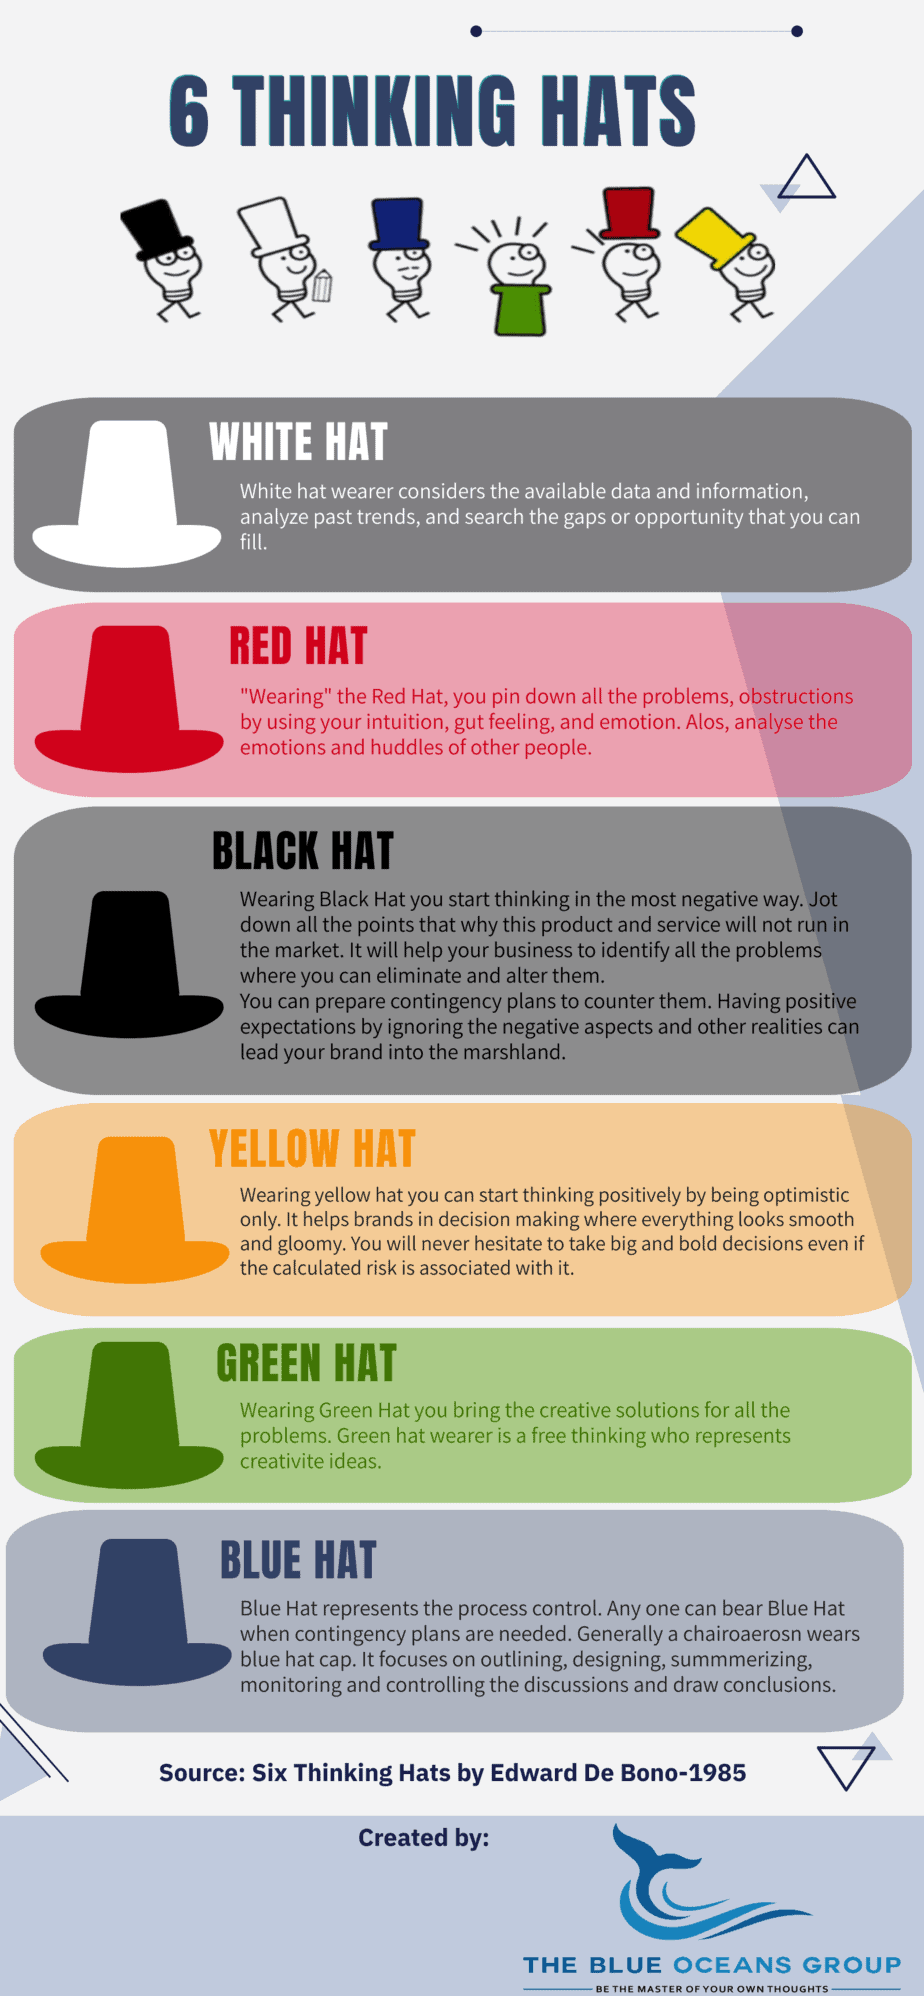 Six Thinking Hats by The Blue Oceans Group